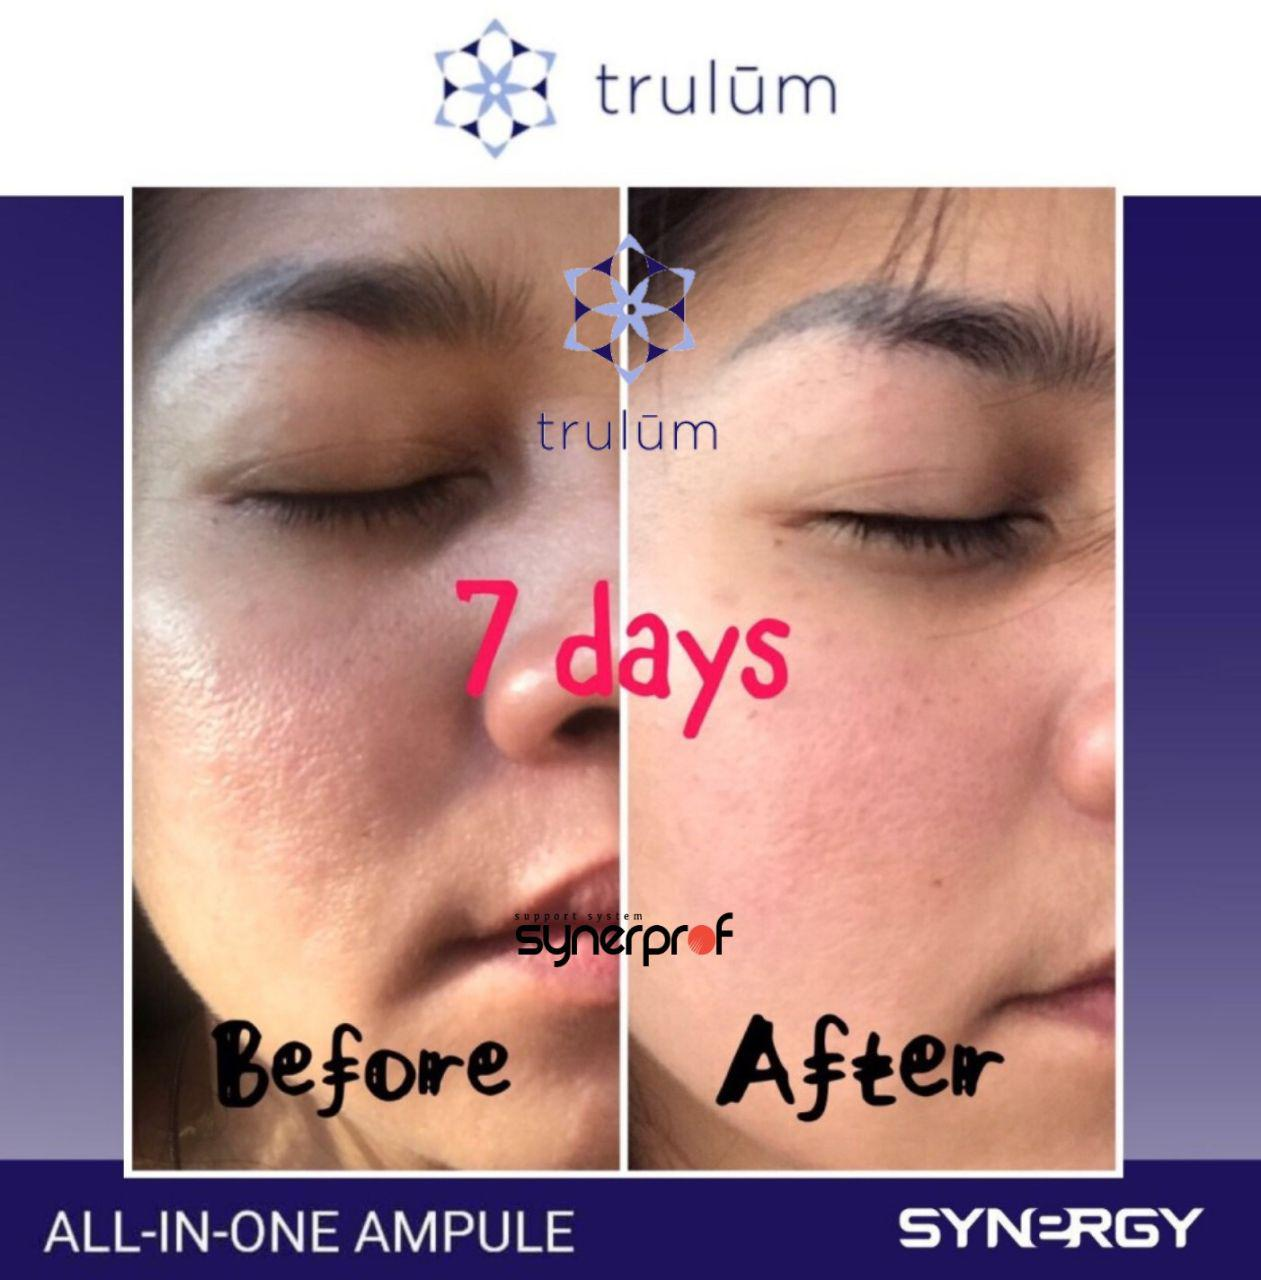 Jual Trulum All In One Ampoule Di Kurra, Tana Toraja WA: 08112338376